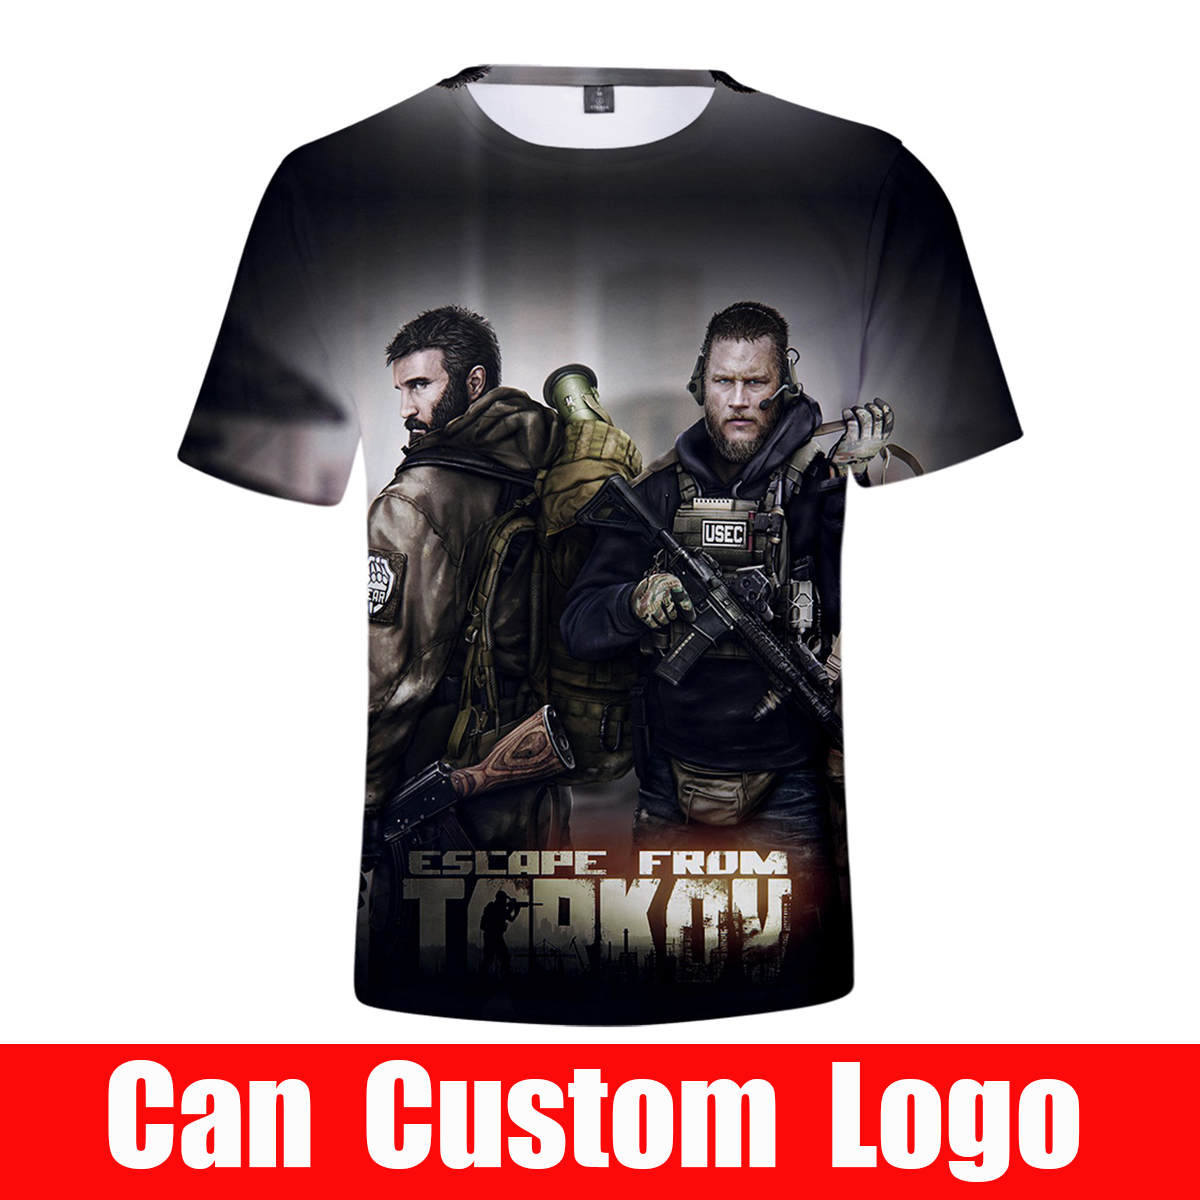 Escape from Tarkov 3D Man Tops Short Tee Hot Game Costumes 2019 new arrival T-shirts for Man(China)